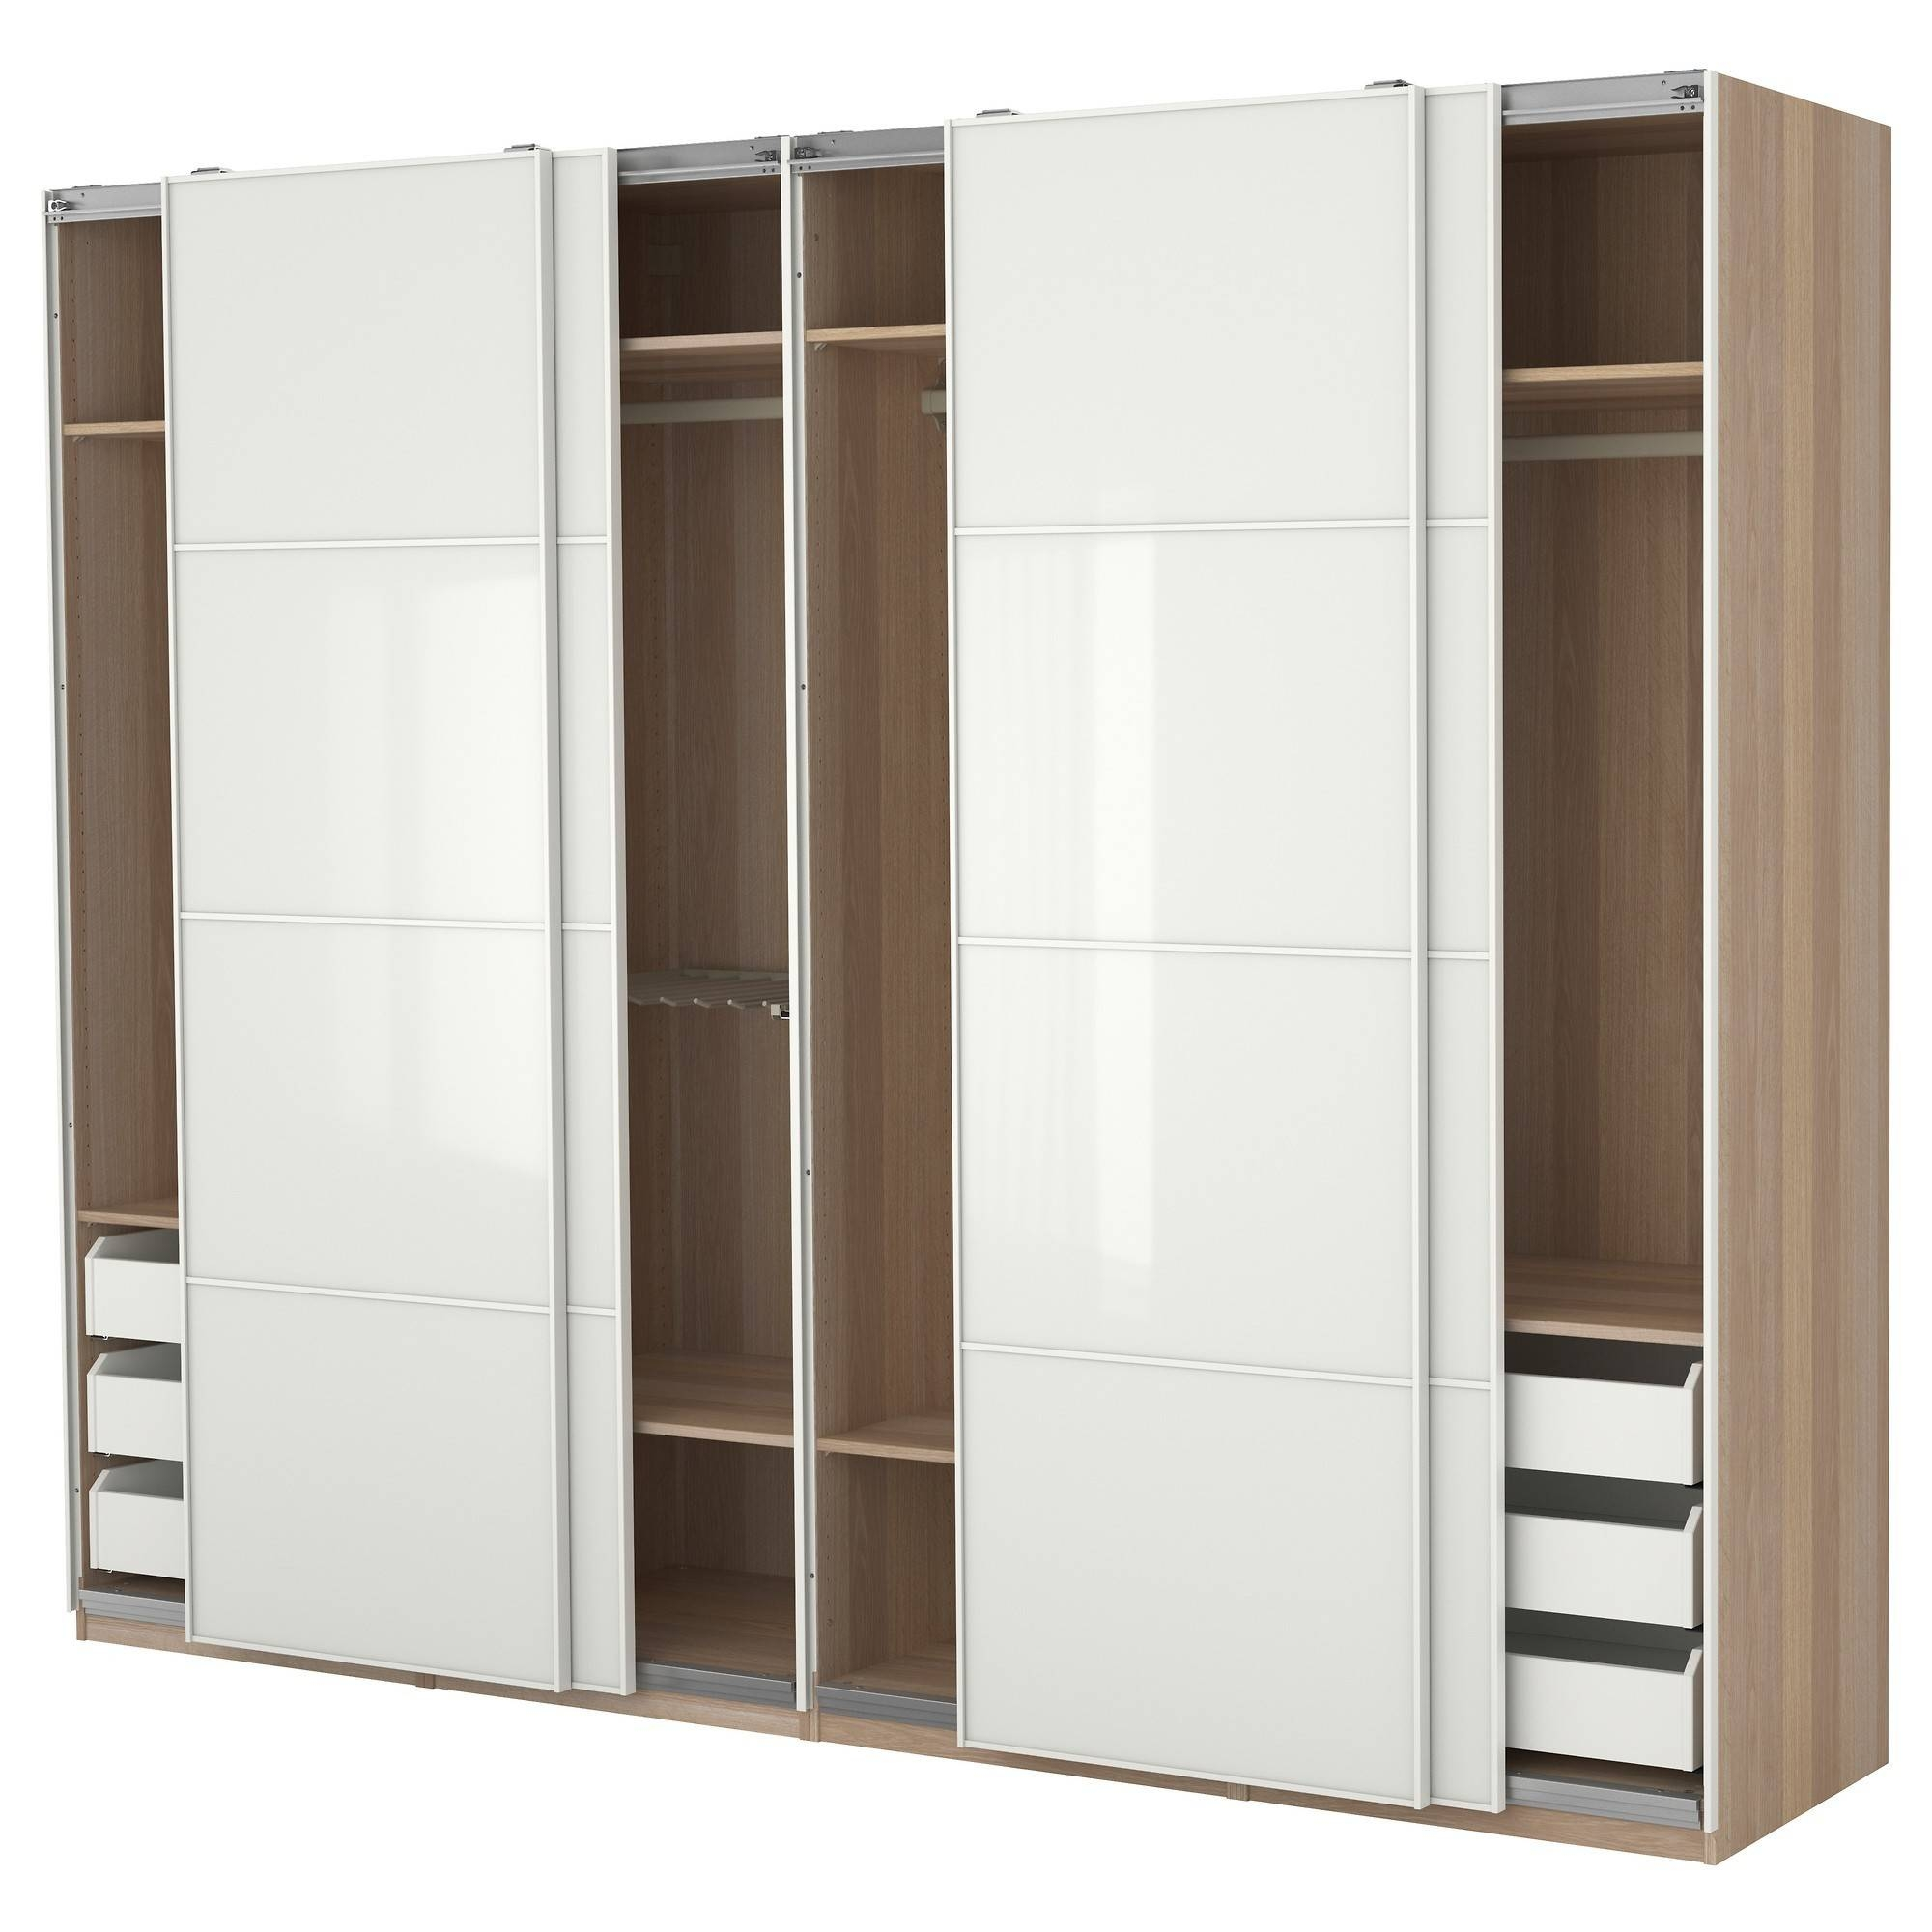 Furniture: Fancy Wardrobe Armoire For Wardrobe Organizer Idea for Cheap Wardrobes With Drawers (Image 3 of 15)